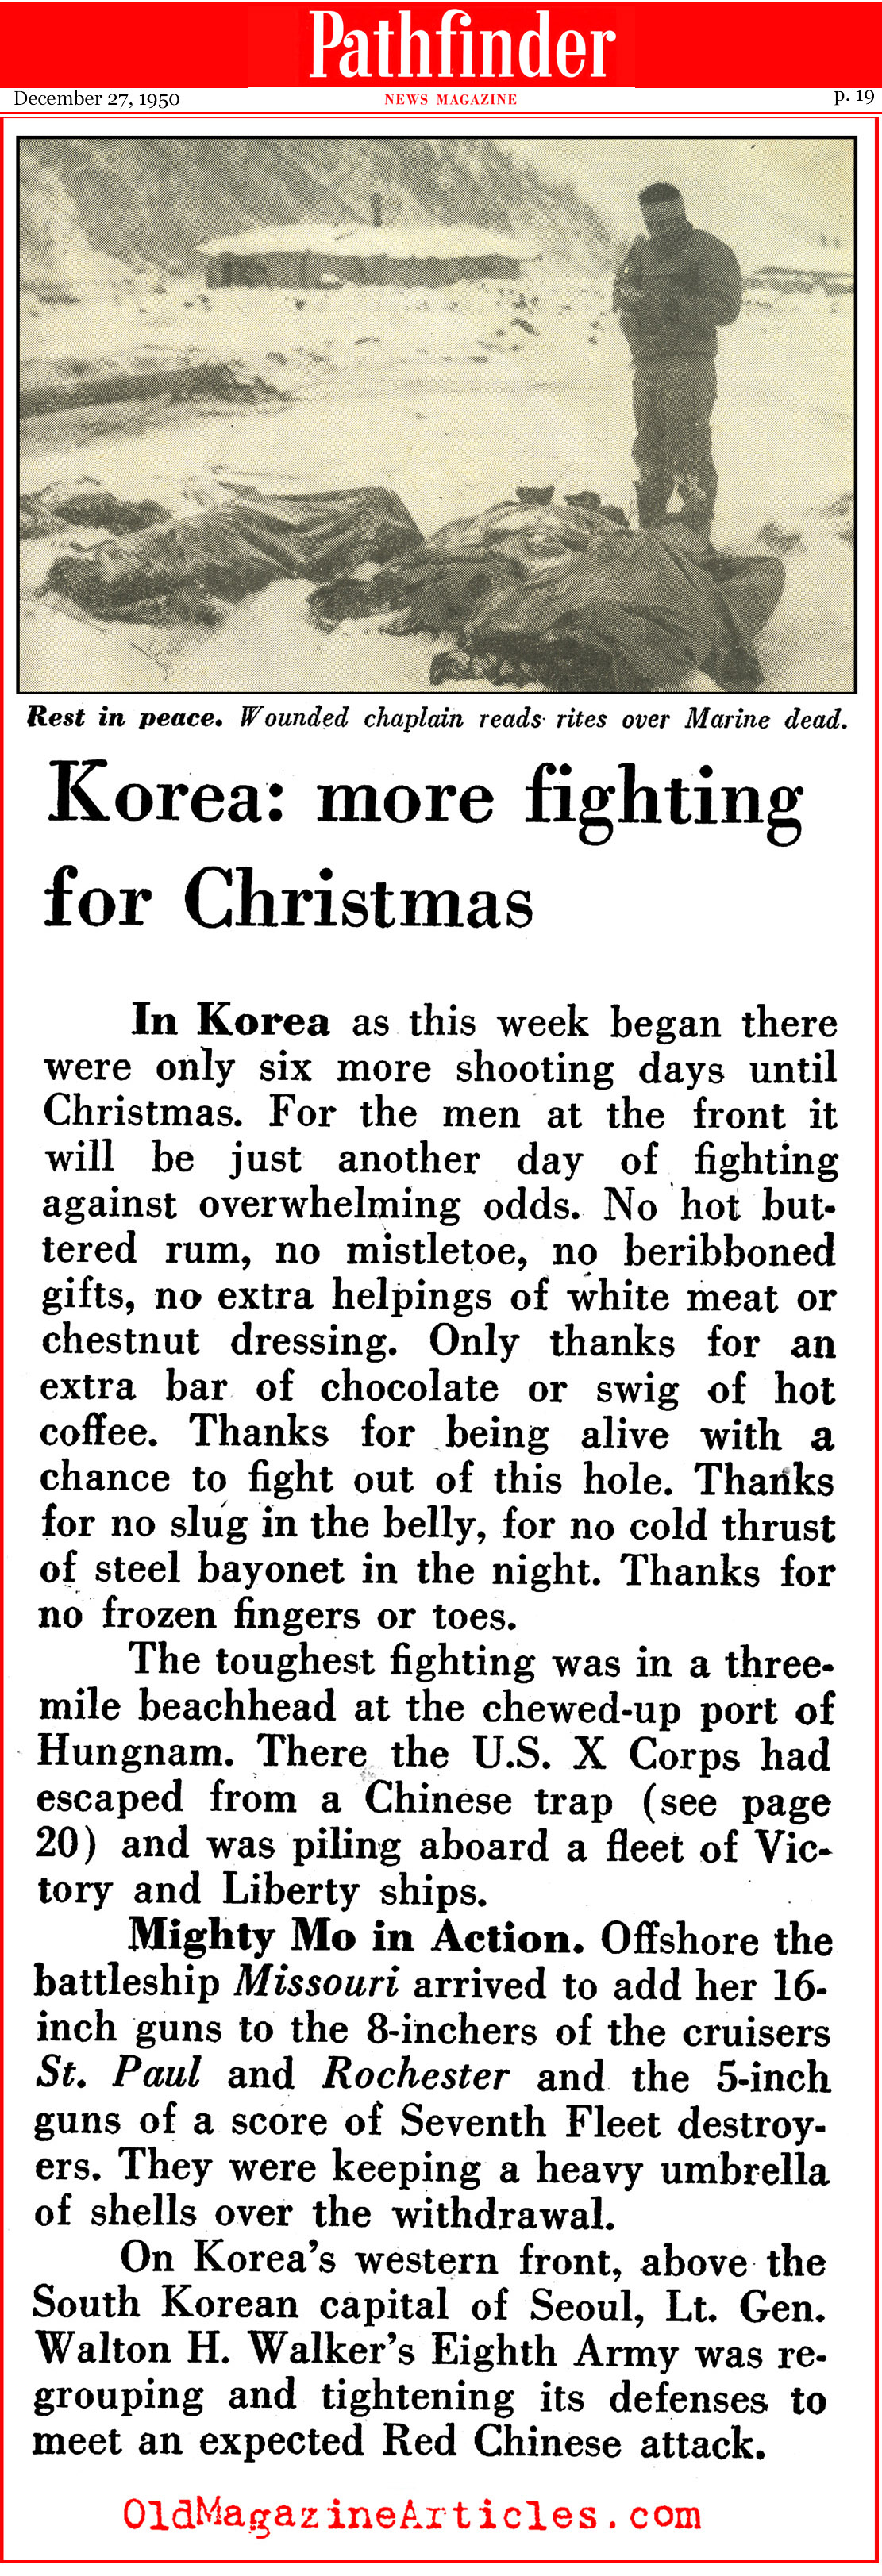 More Fighting for Christmas (Pathfinder Magazine, 1950)